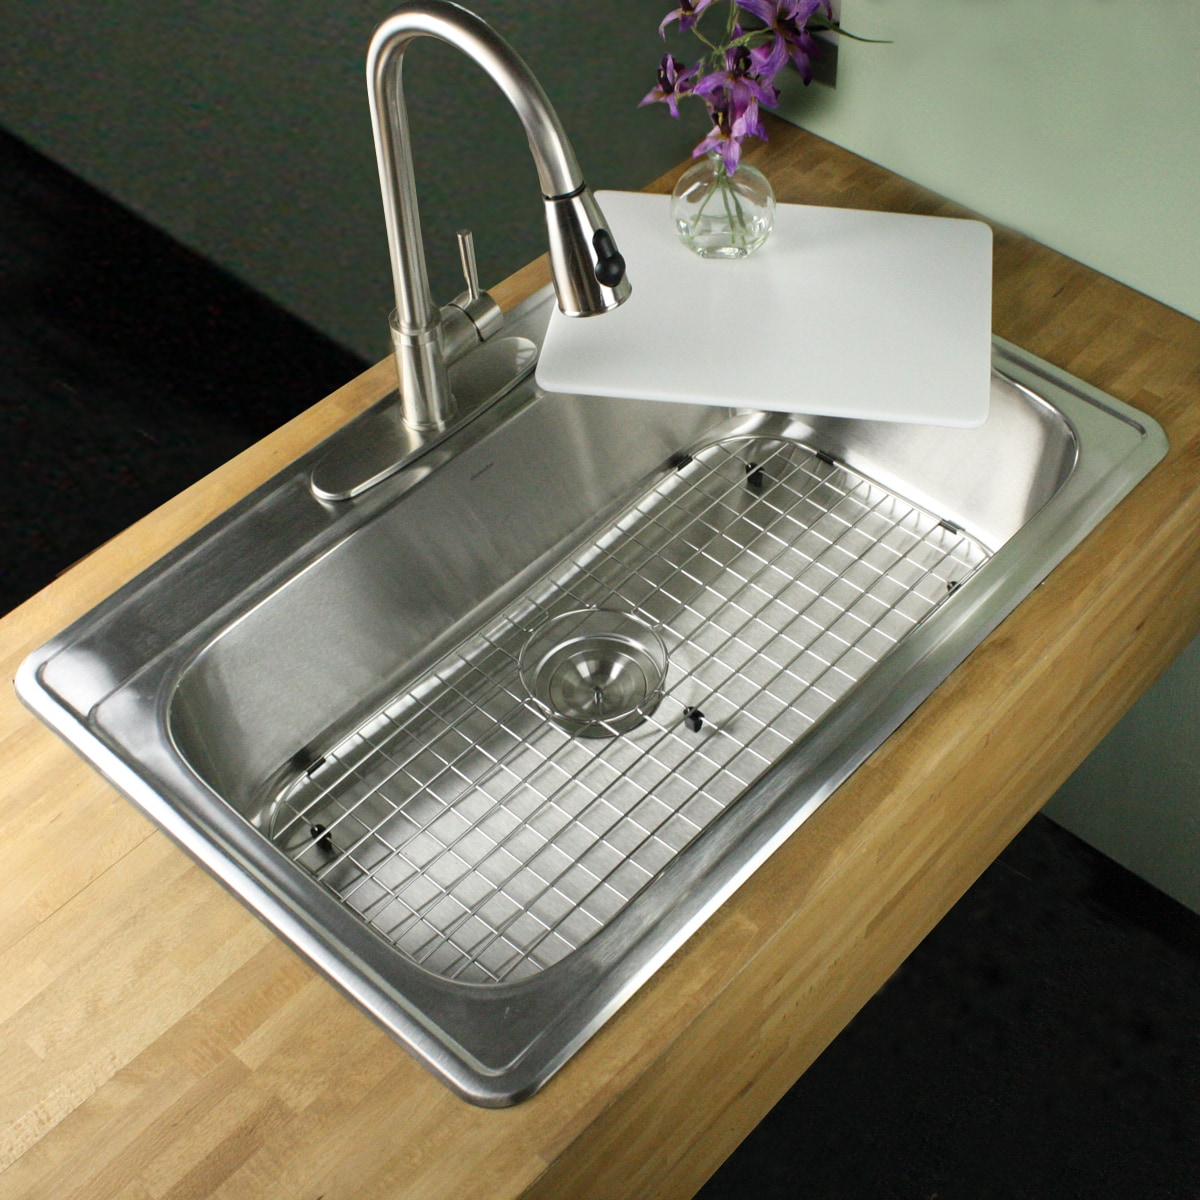 33 Inch 18 Gauge Stainless Steel Drop In Single Bowl Kitchen Sink With Cutting Board Drain And